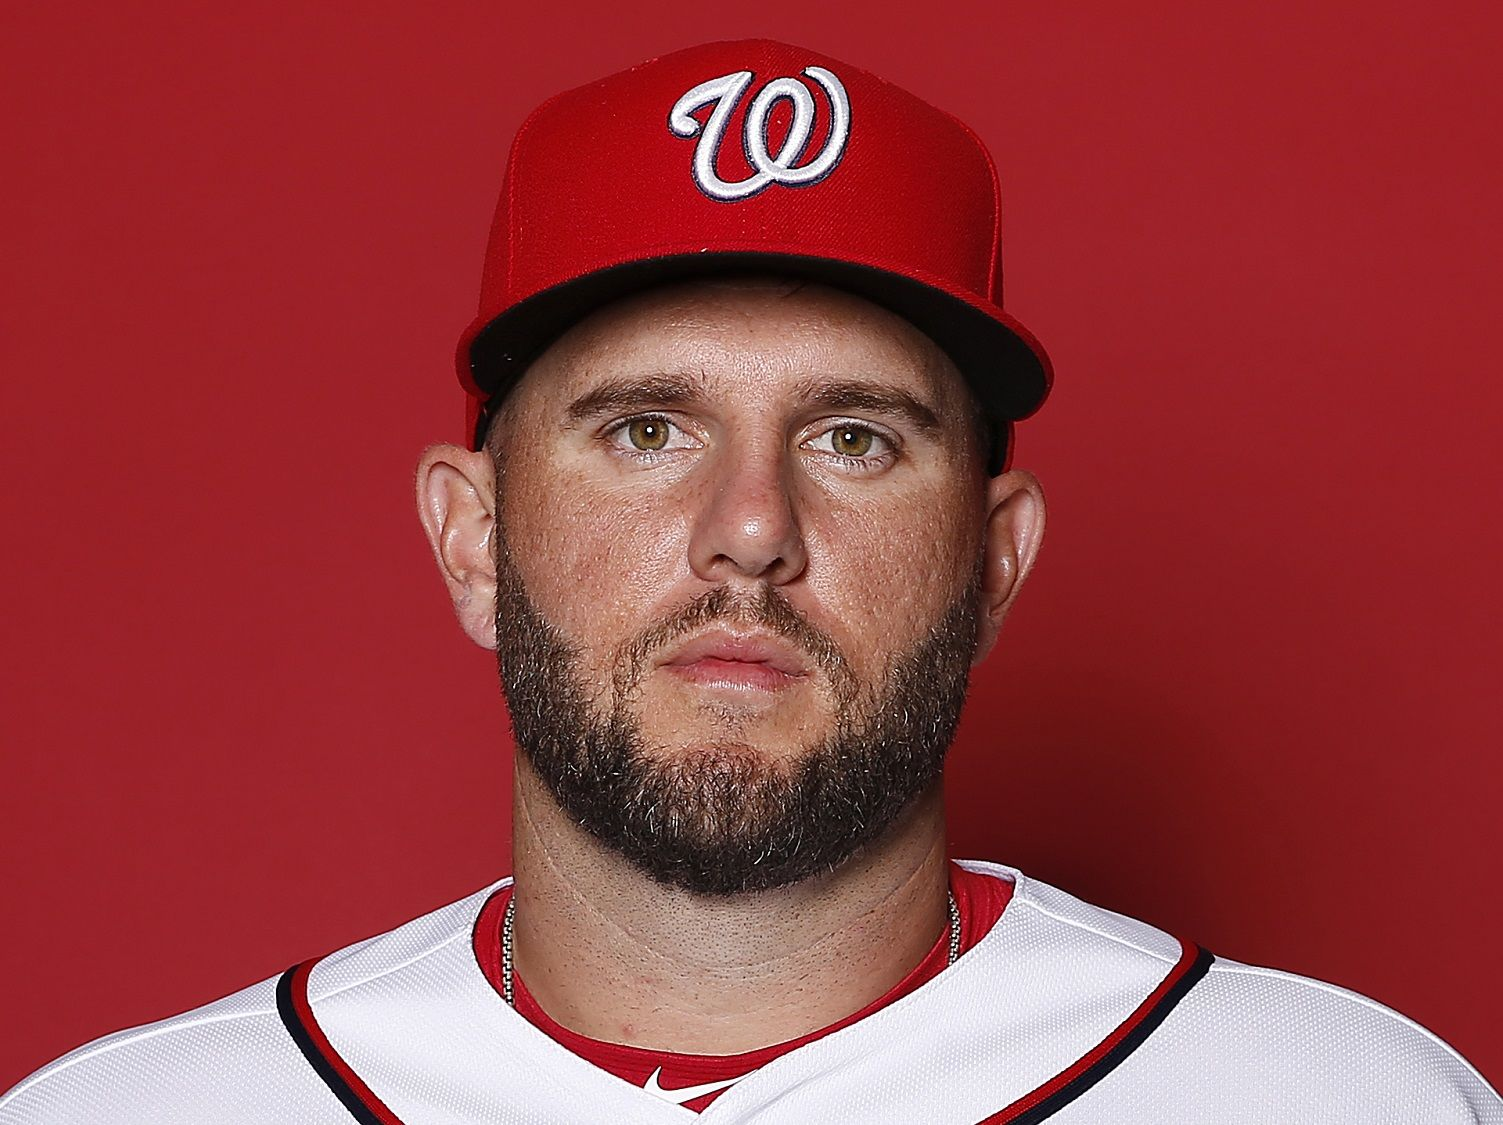 WEST PALM BEACH, FLORIDA - FEBRUARY 22:  Matt Adams #15 of the Washington Nationals poses for a portrait on Photo Day at FITTEAM Ballpark of The Palm Beaches during on February 22, 2019 in West Palm Beach, Florida. (Photo by Michael Reaves/Getty Images)